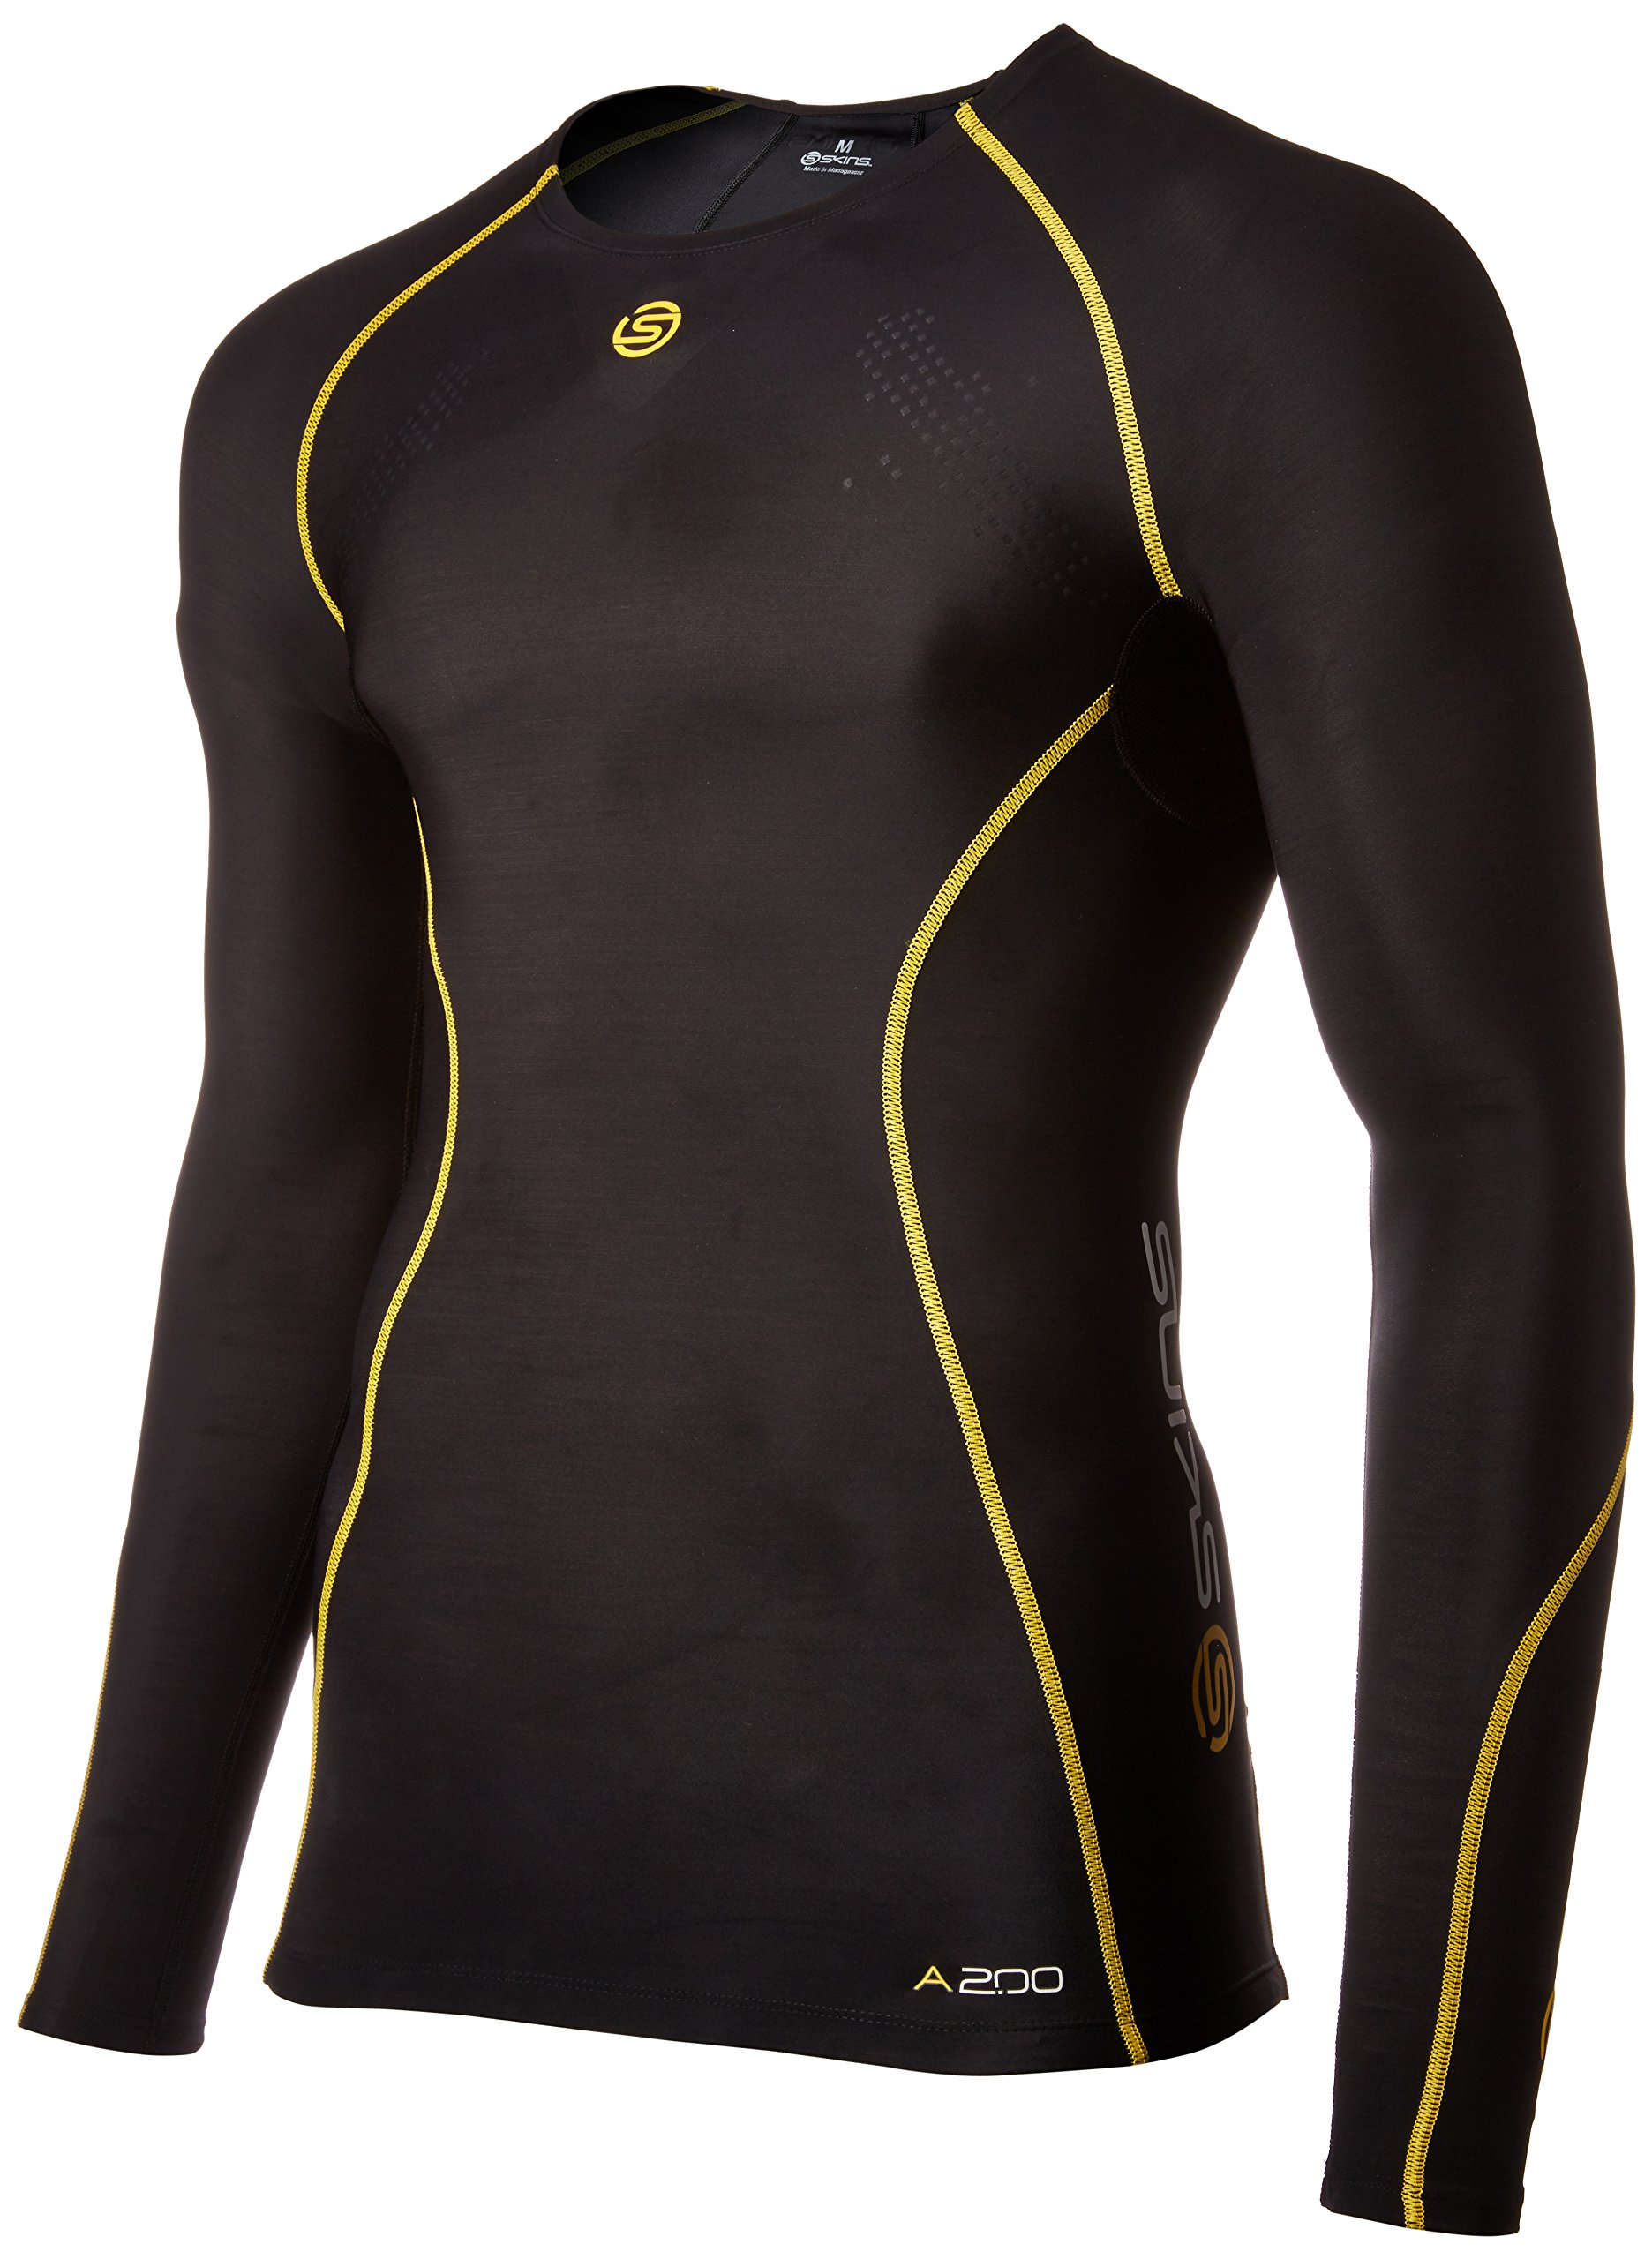 Skins A200 Men's Long Sleeve Compression Top, XX-Large Black/Yellow